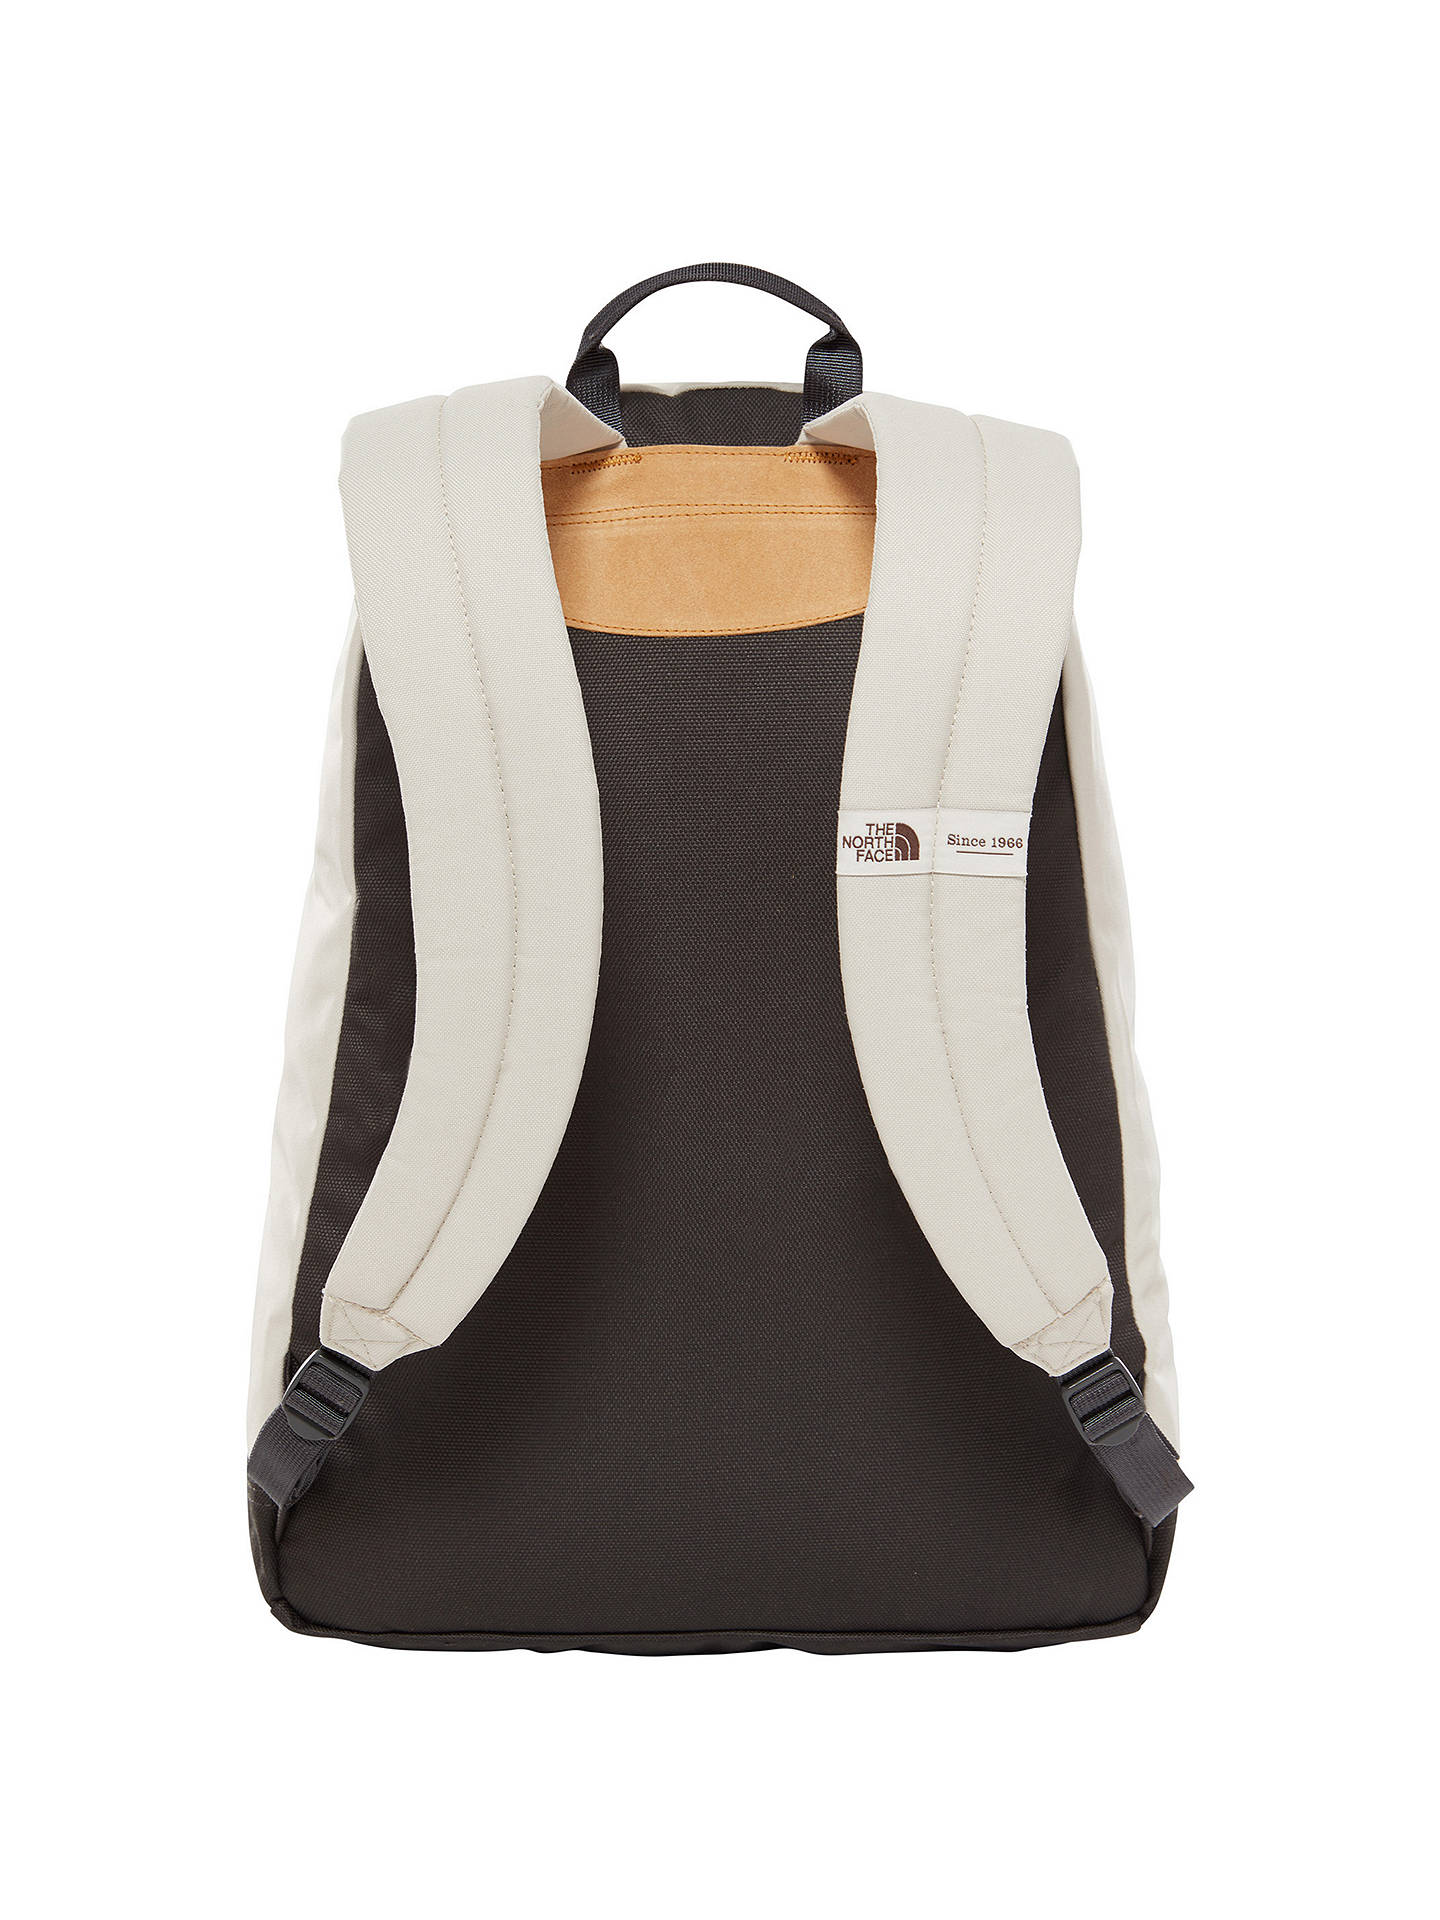 Buy The North Face Berkeley Backpack, Peyote Beige/Asphalt Grey Online at johnlewis.com